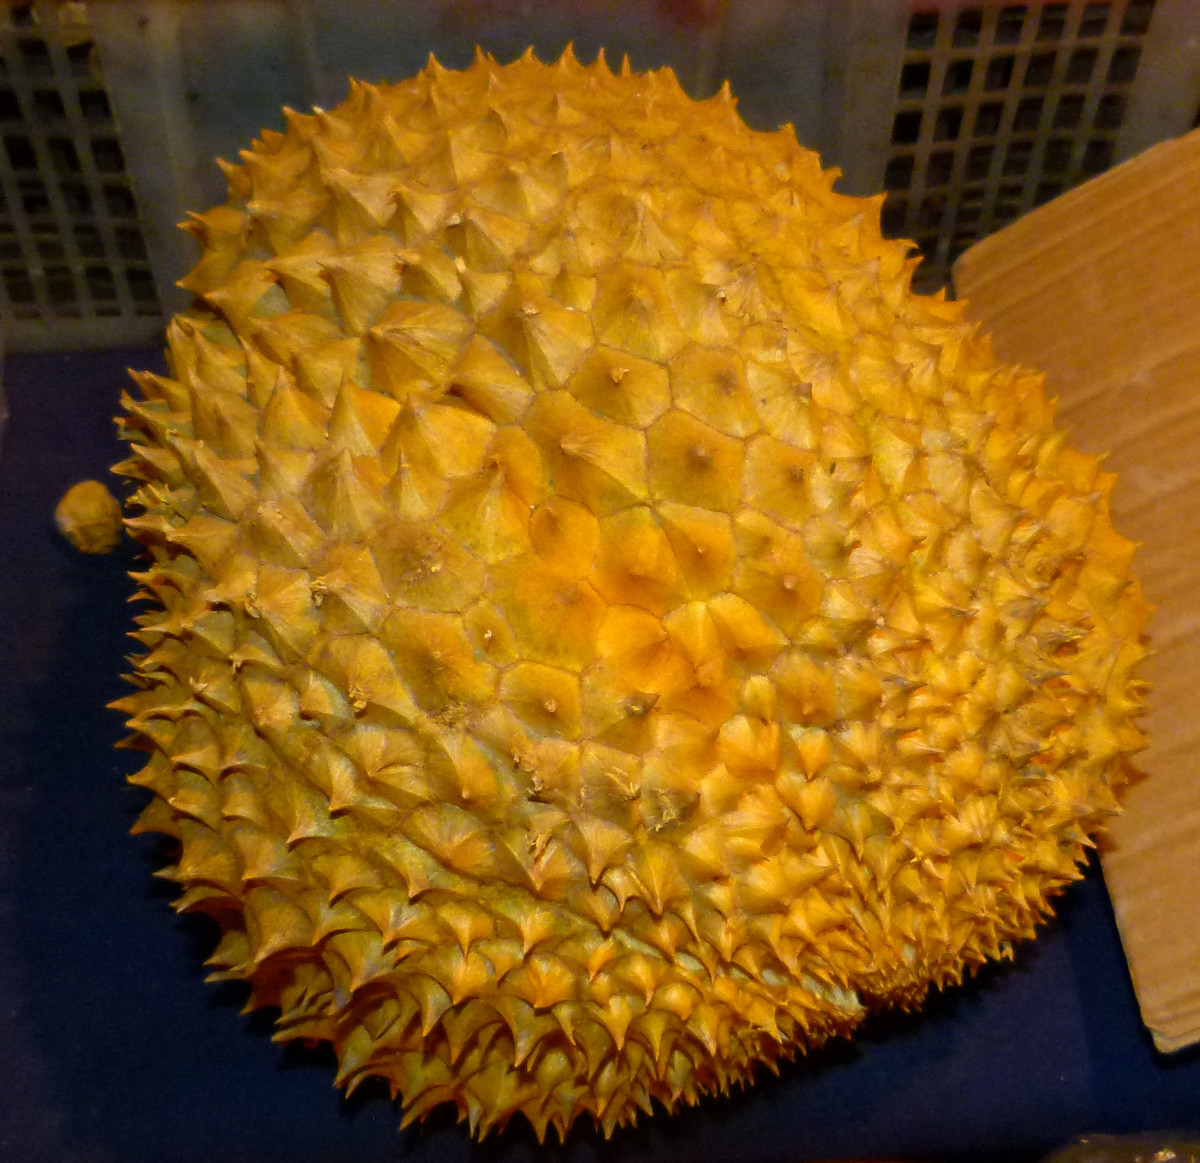 Durian Fruit - Nutrients, Health Benefits, Uses And More